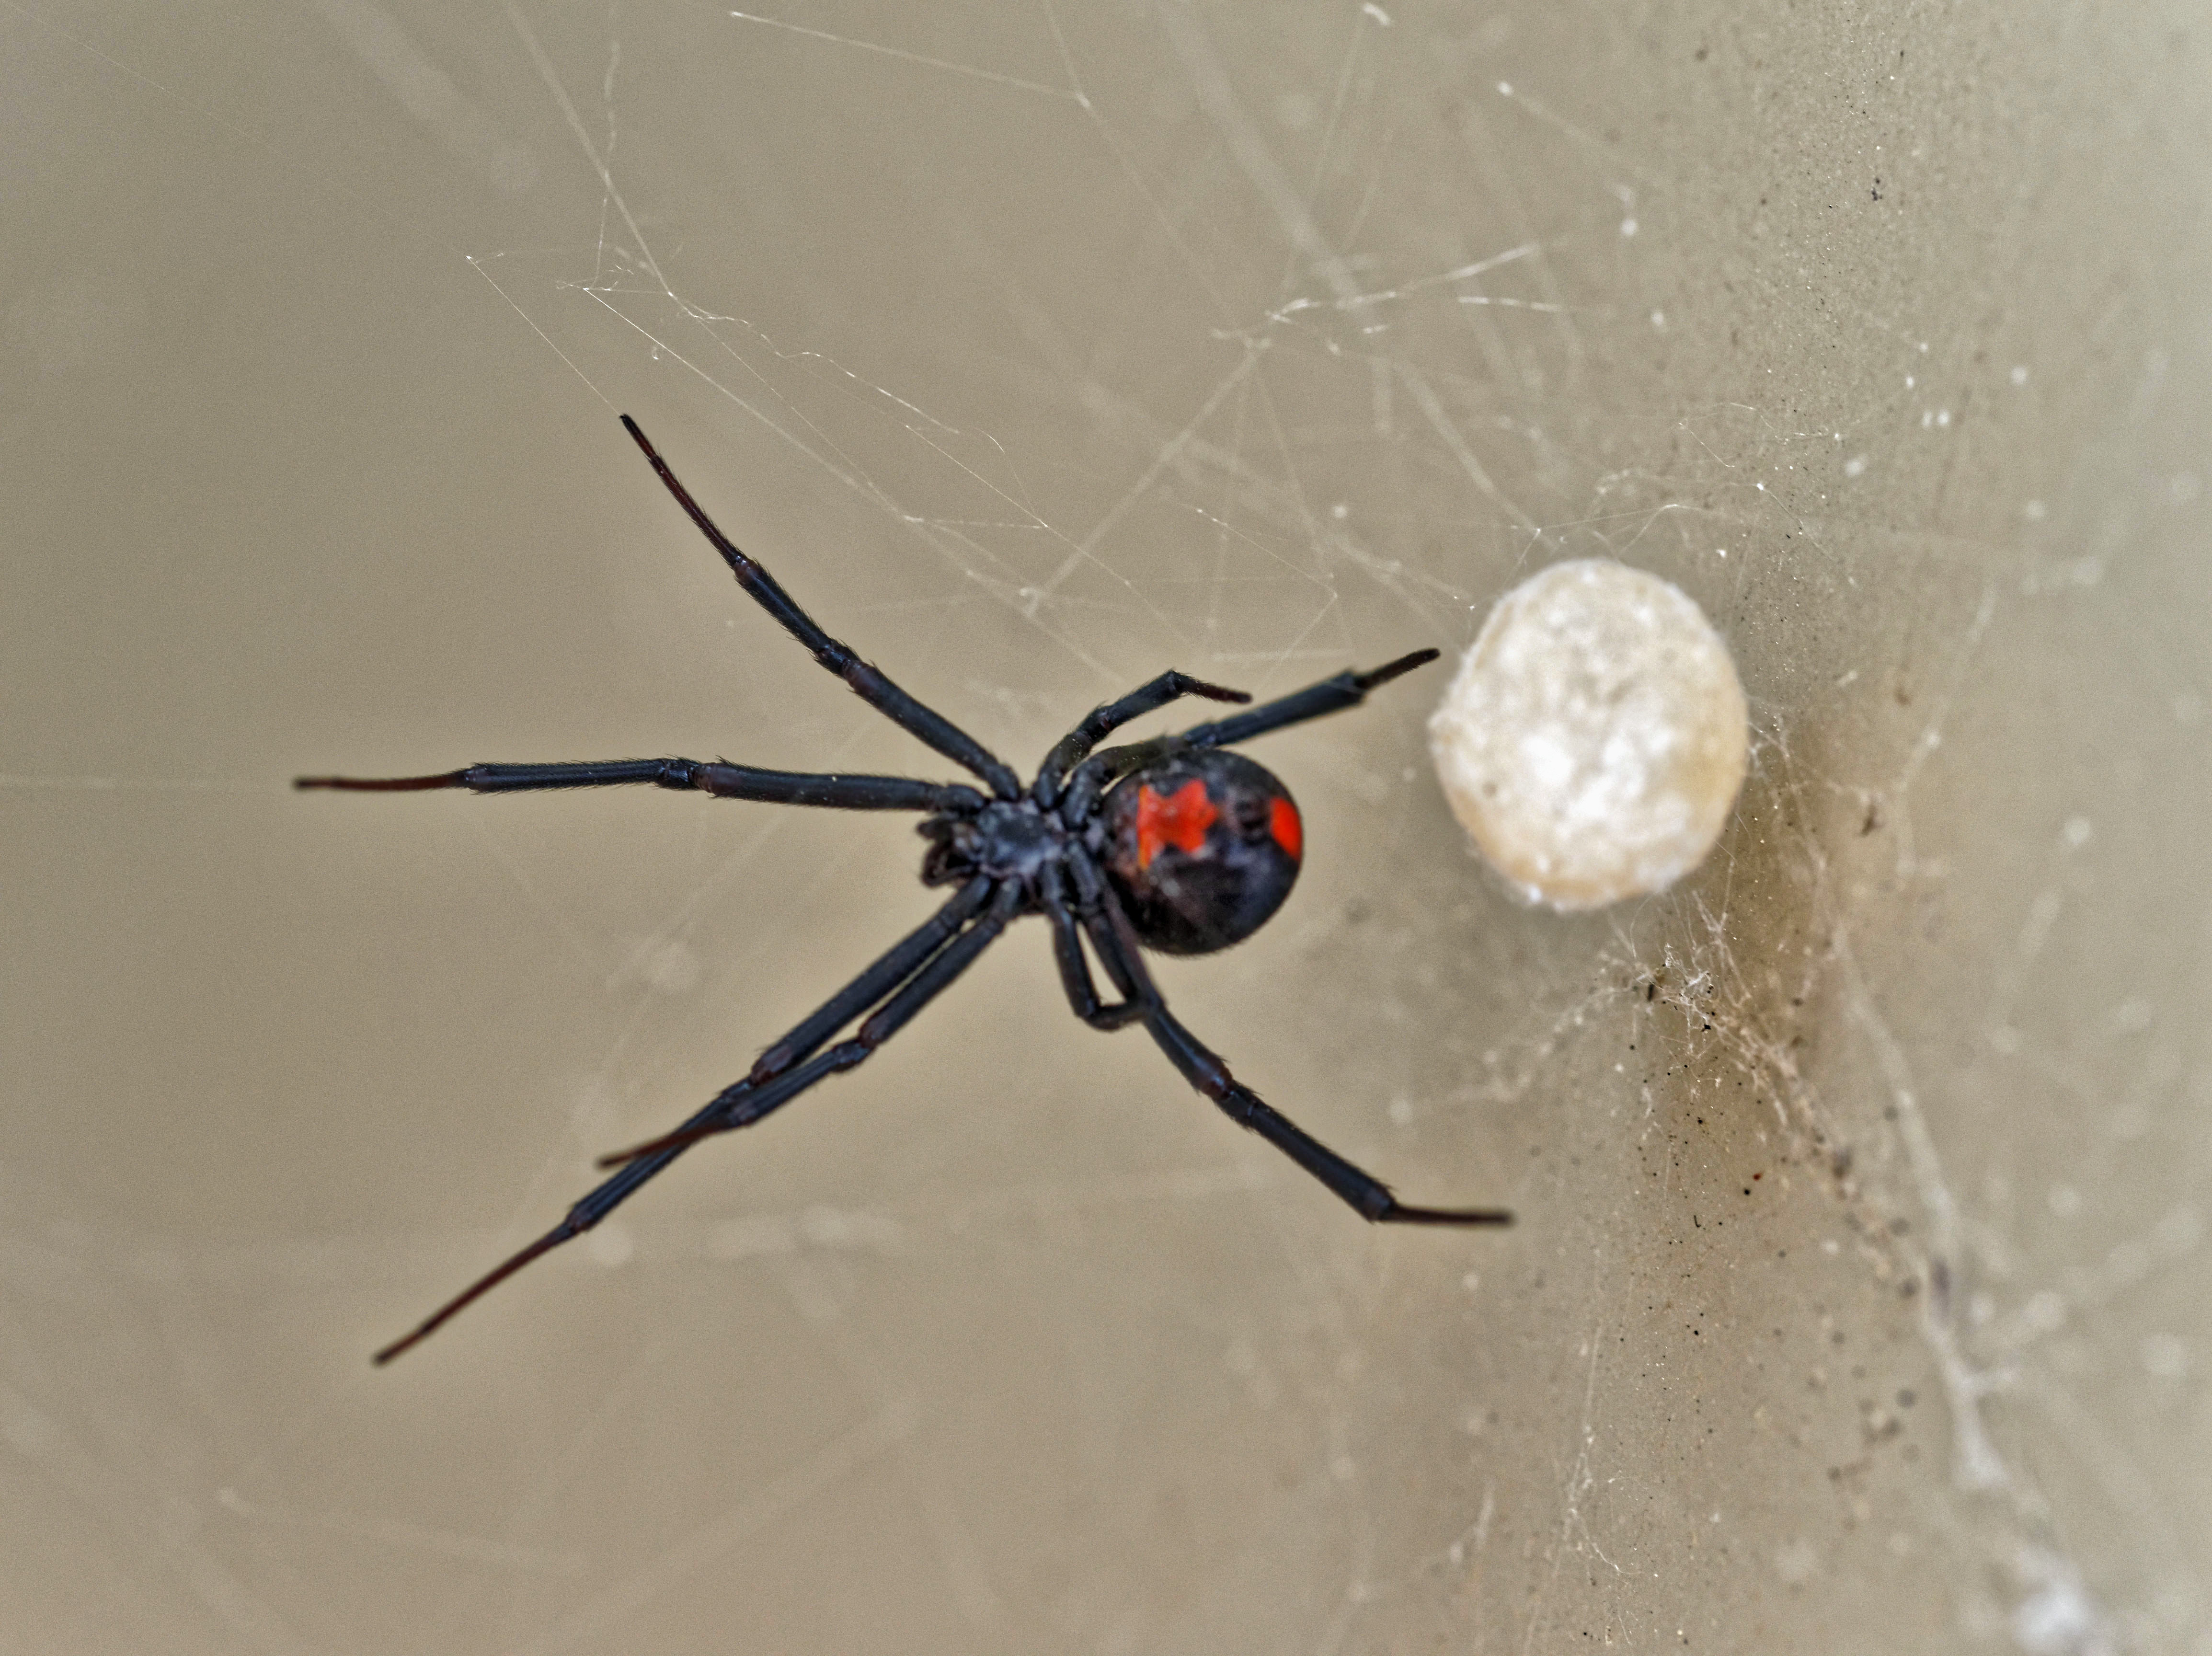 This should be Redback-1.jpeg.  Is it missing?